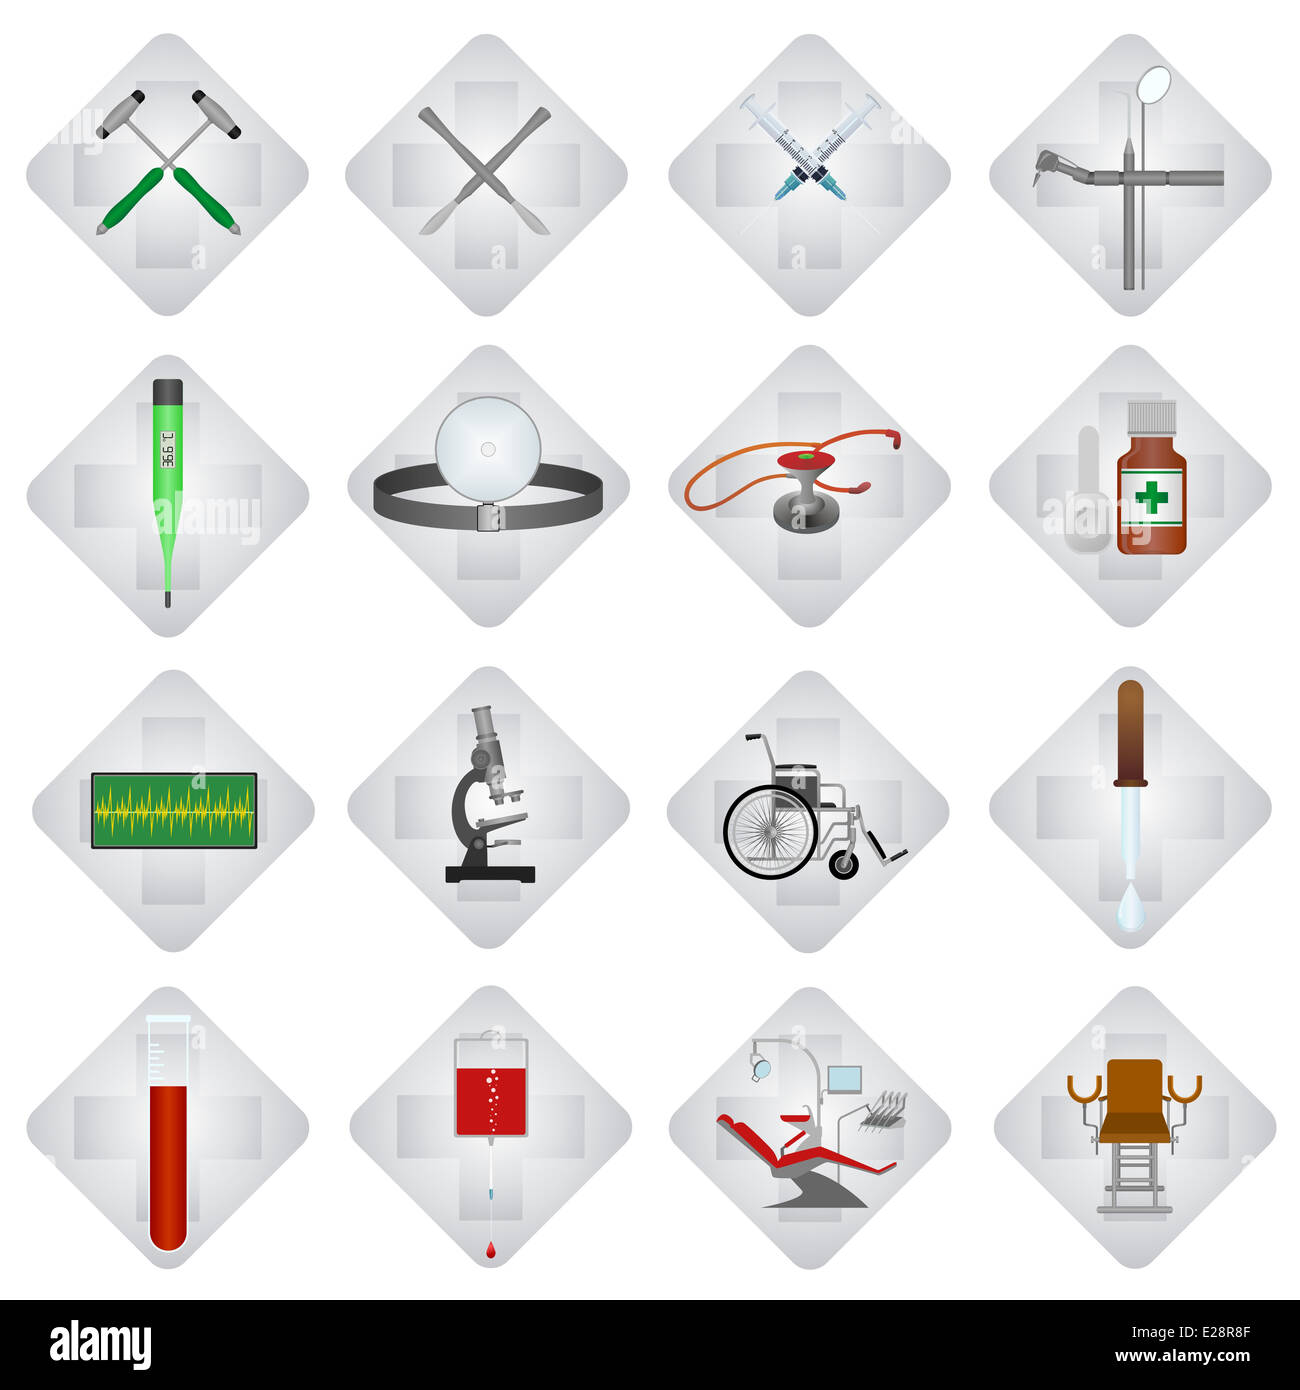 Set of medical icons and objects. Illustration on white background. - Stock Image